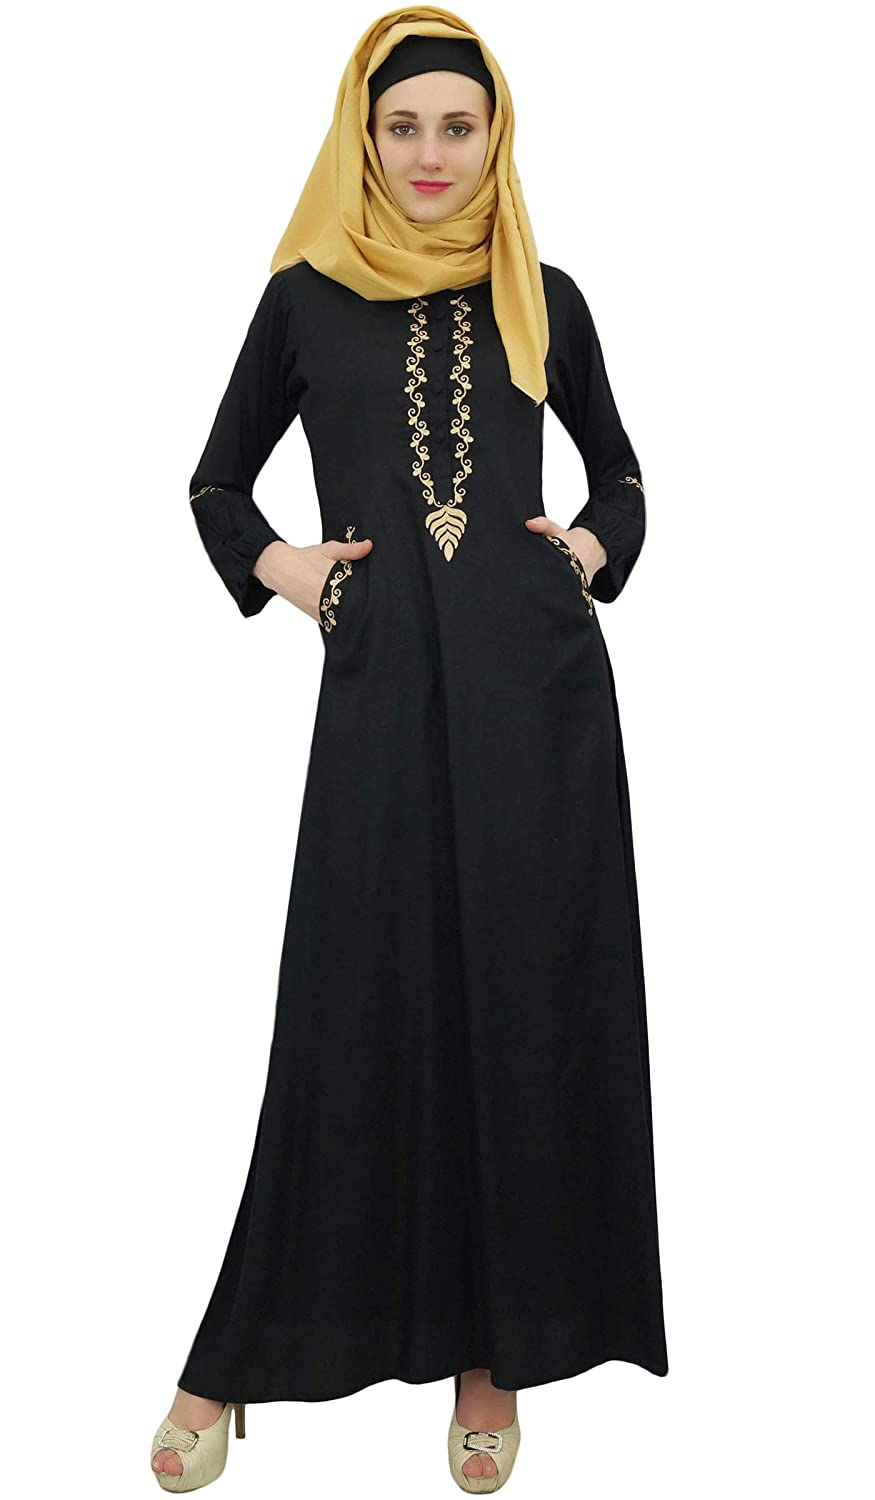 f123381f72c Bimba Women s Muslim Abaya Aari Work Jilbab Islamic Dress with Hijab   Amazon.co.uk  Clothing